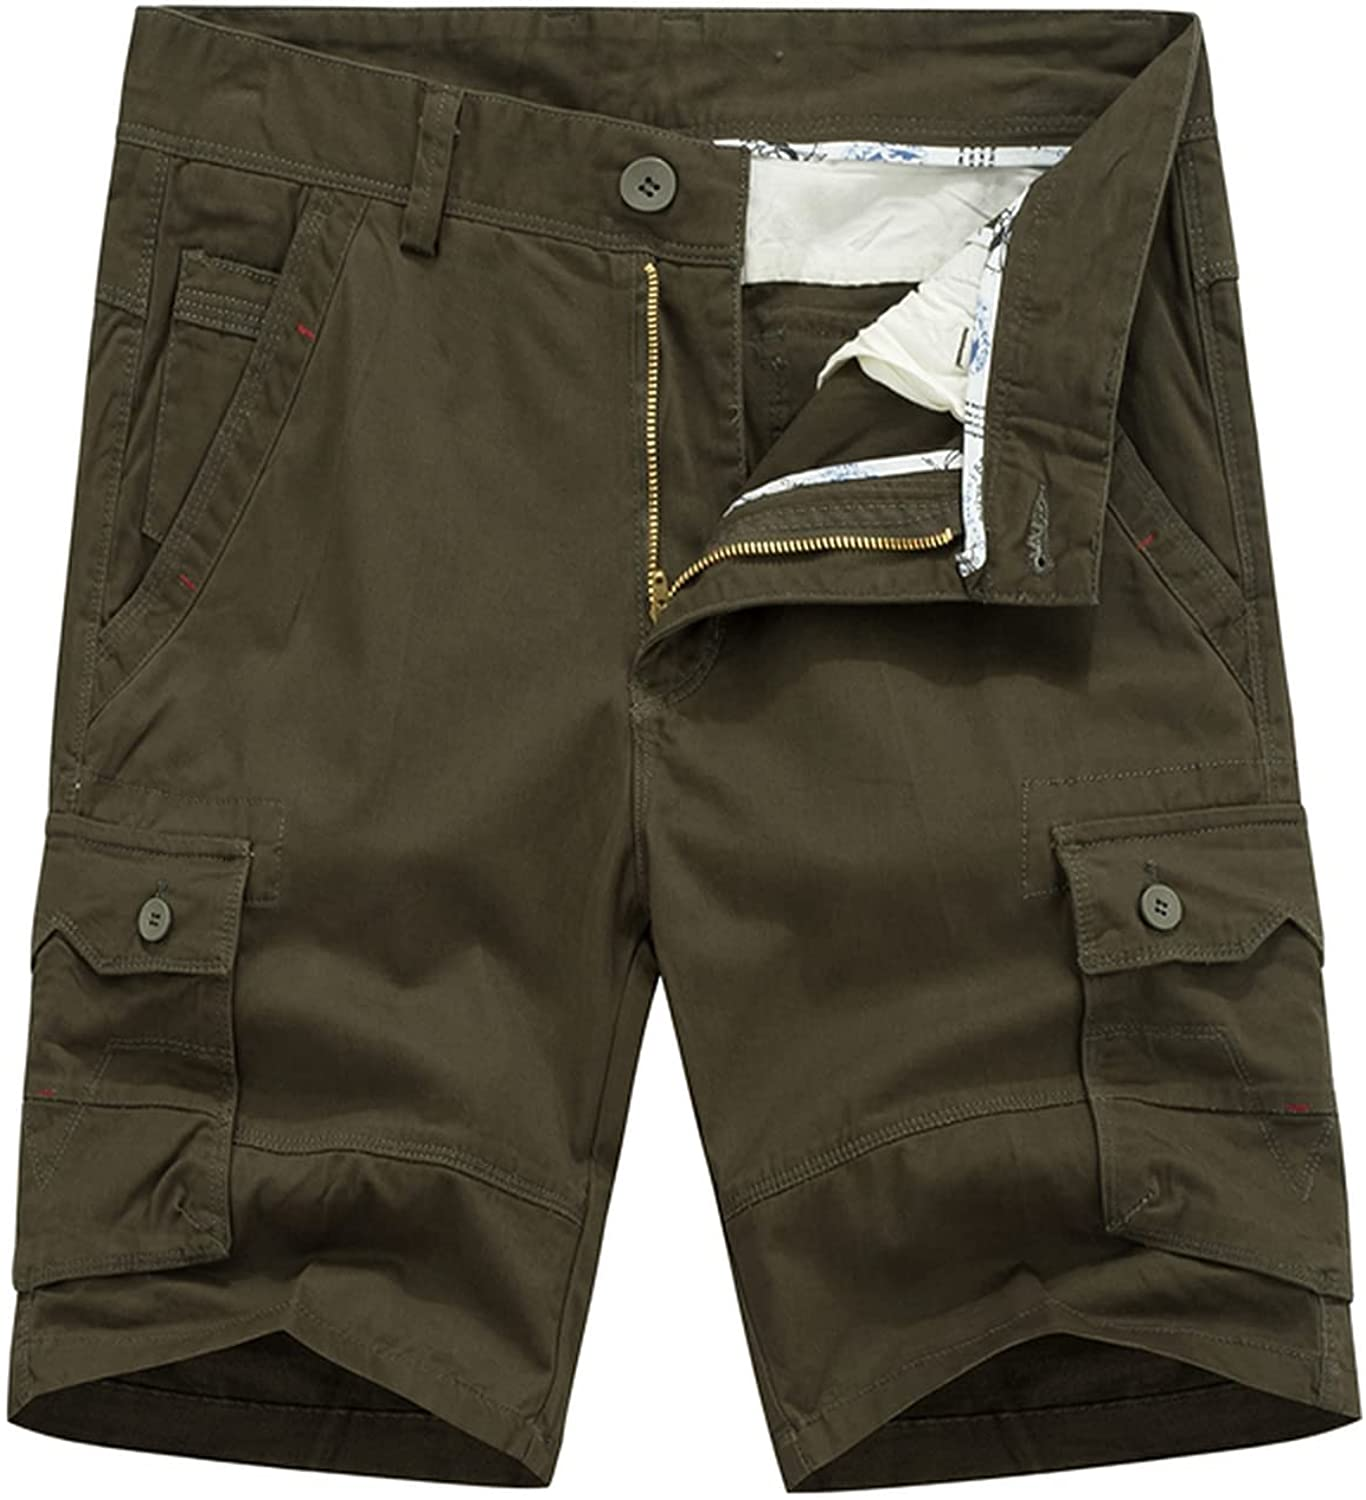 Zutty Casual Cargo Shorts Men's Military Solid Tactical Short Multi Pocket Fitness Loose Work Summer Male 4 Colors Pants